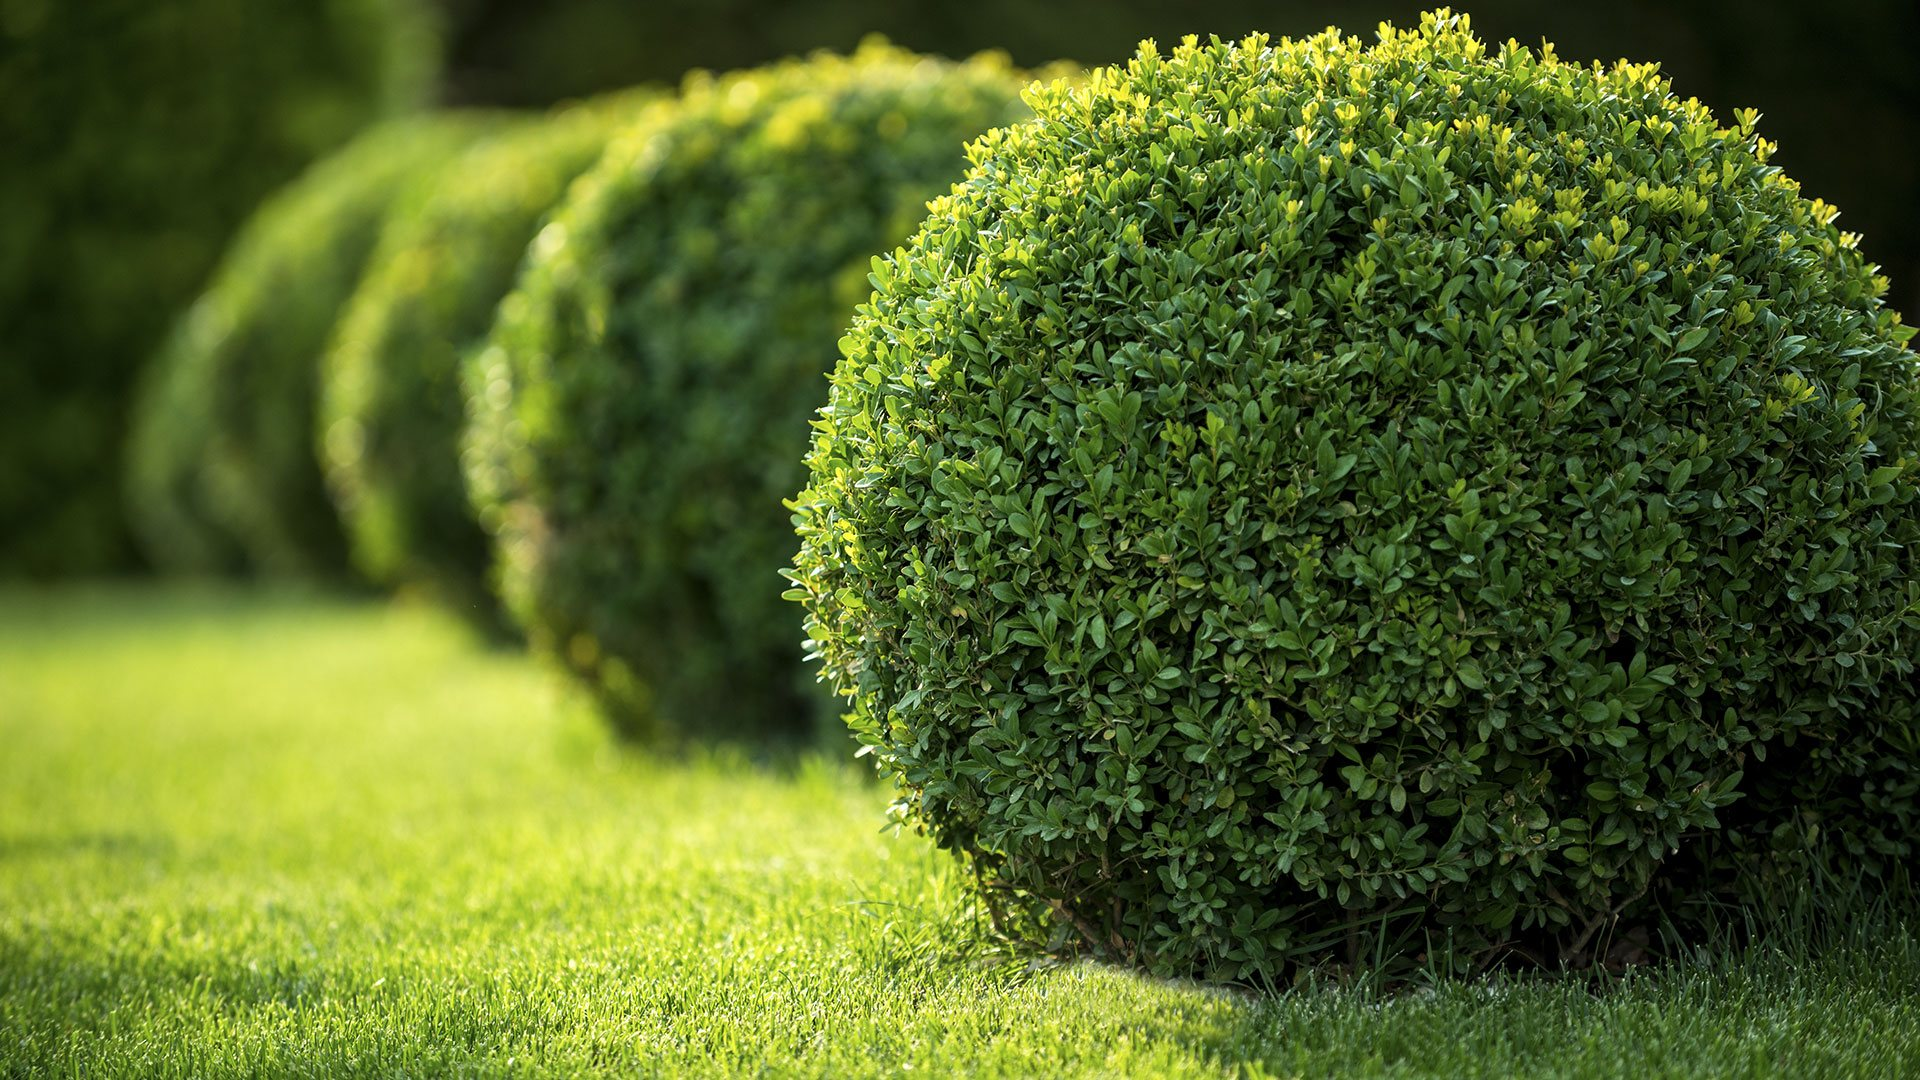 Lawns & More Commercial Property Maintenance, Landscaping and Lawn Care slide 1